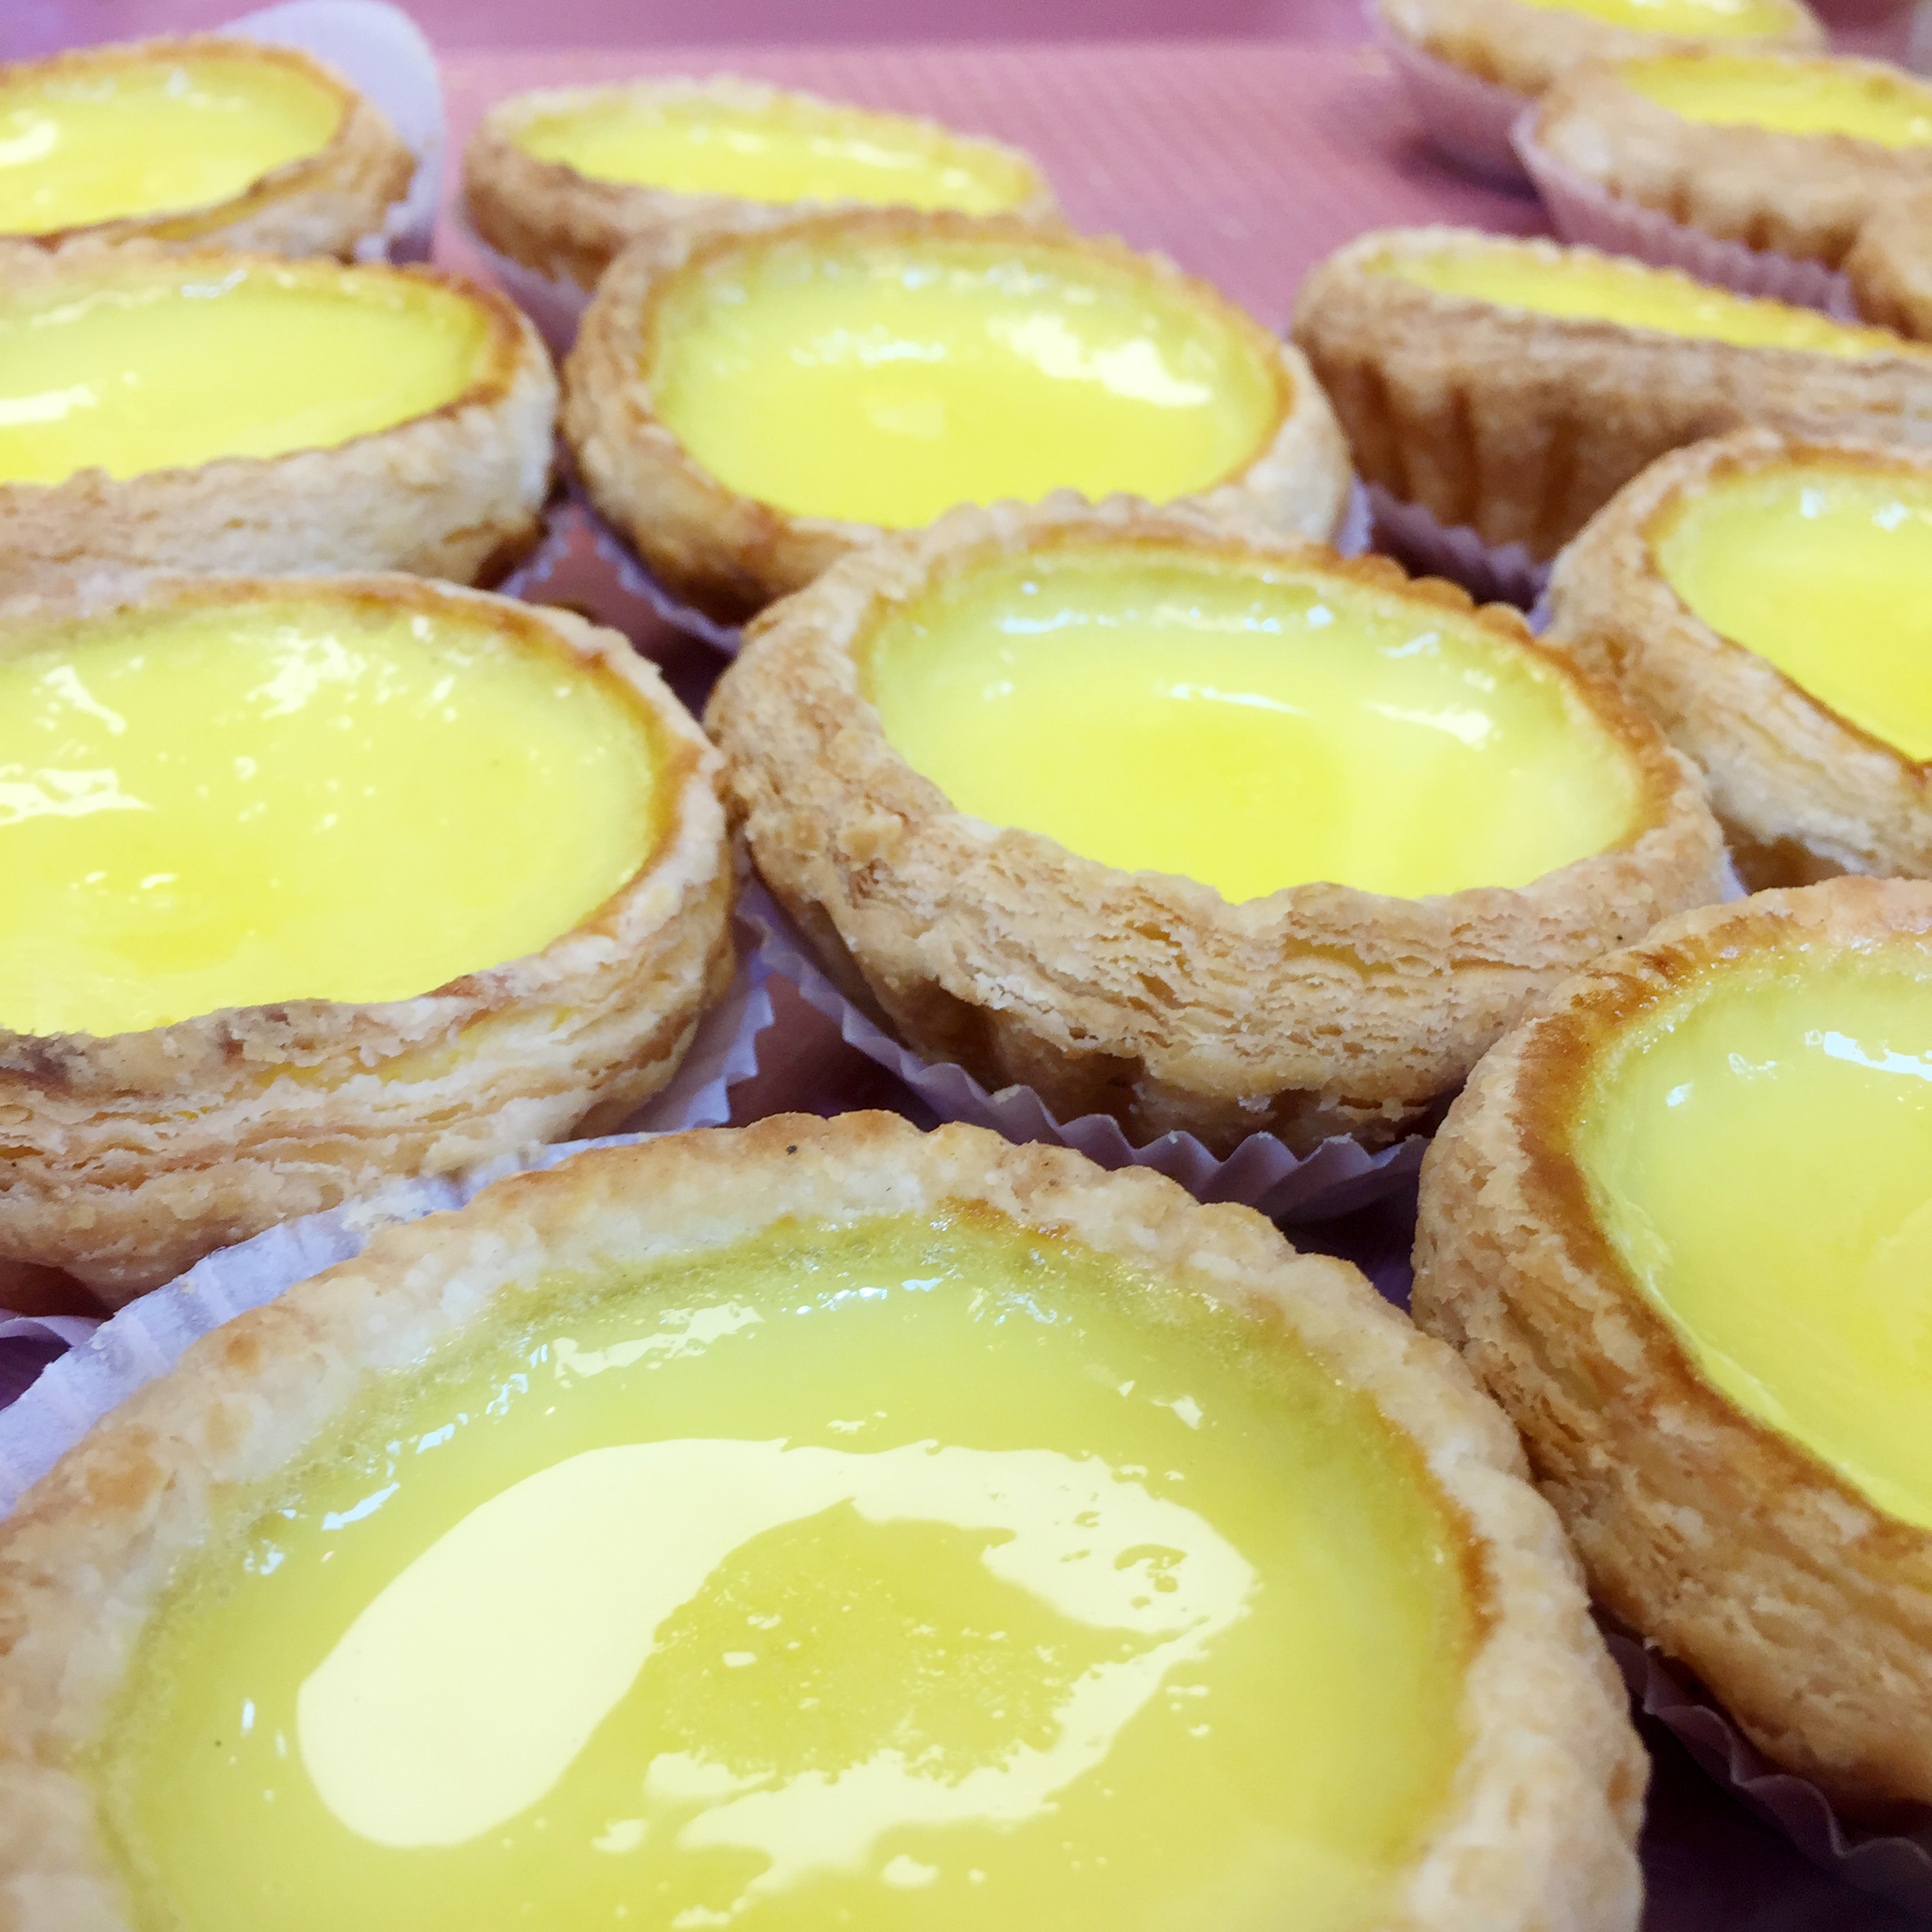 amy_chen_design_chinatown_nyc_food_guide_egg_custard_pies.jpg